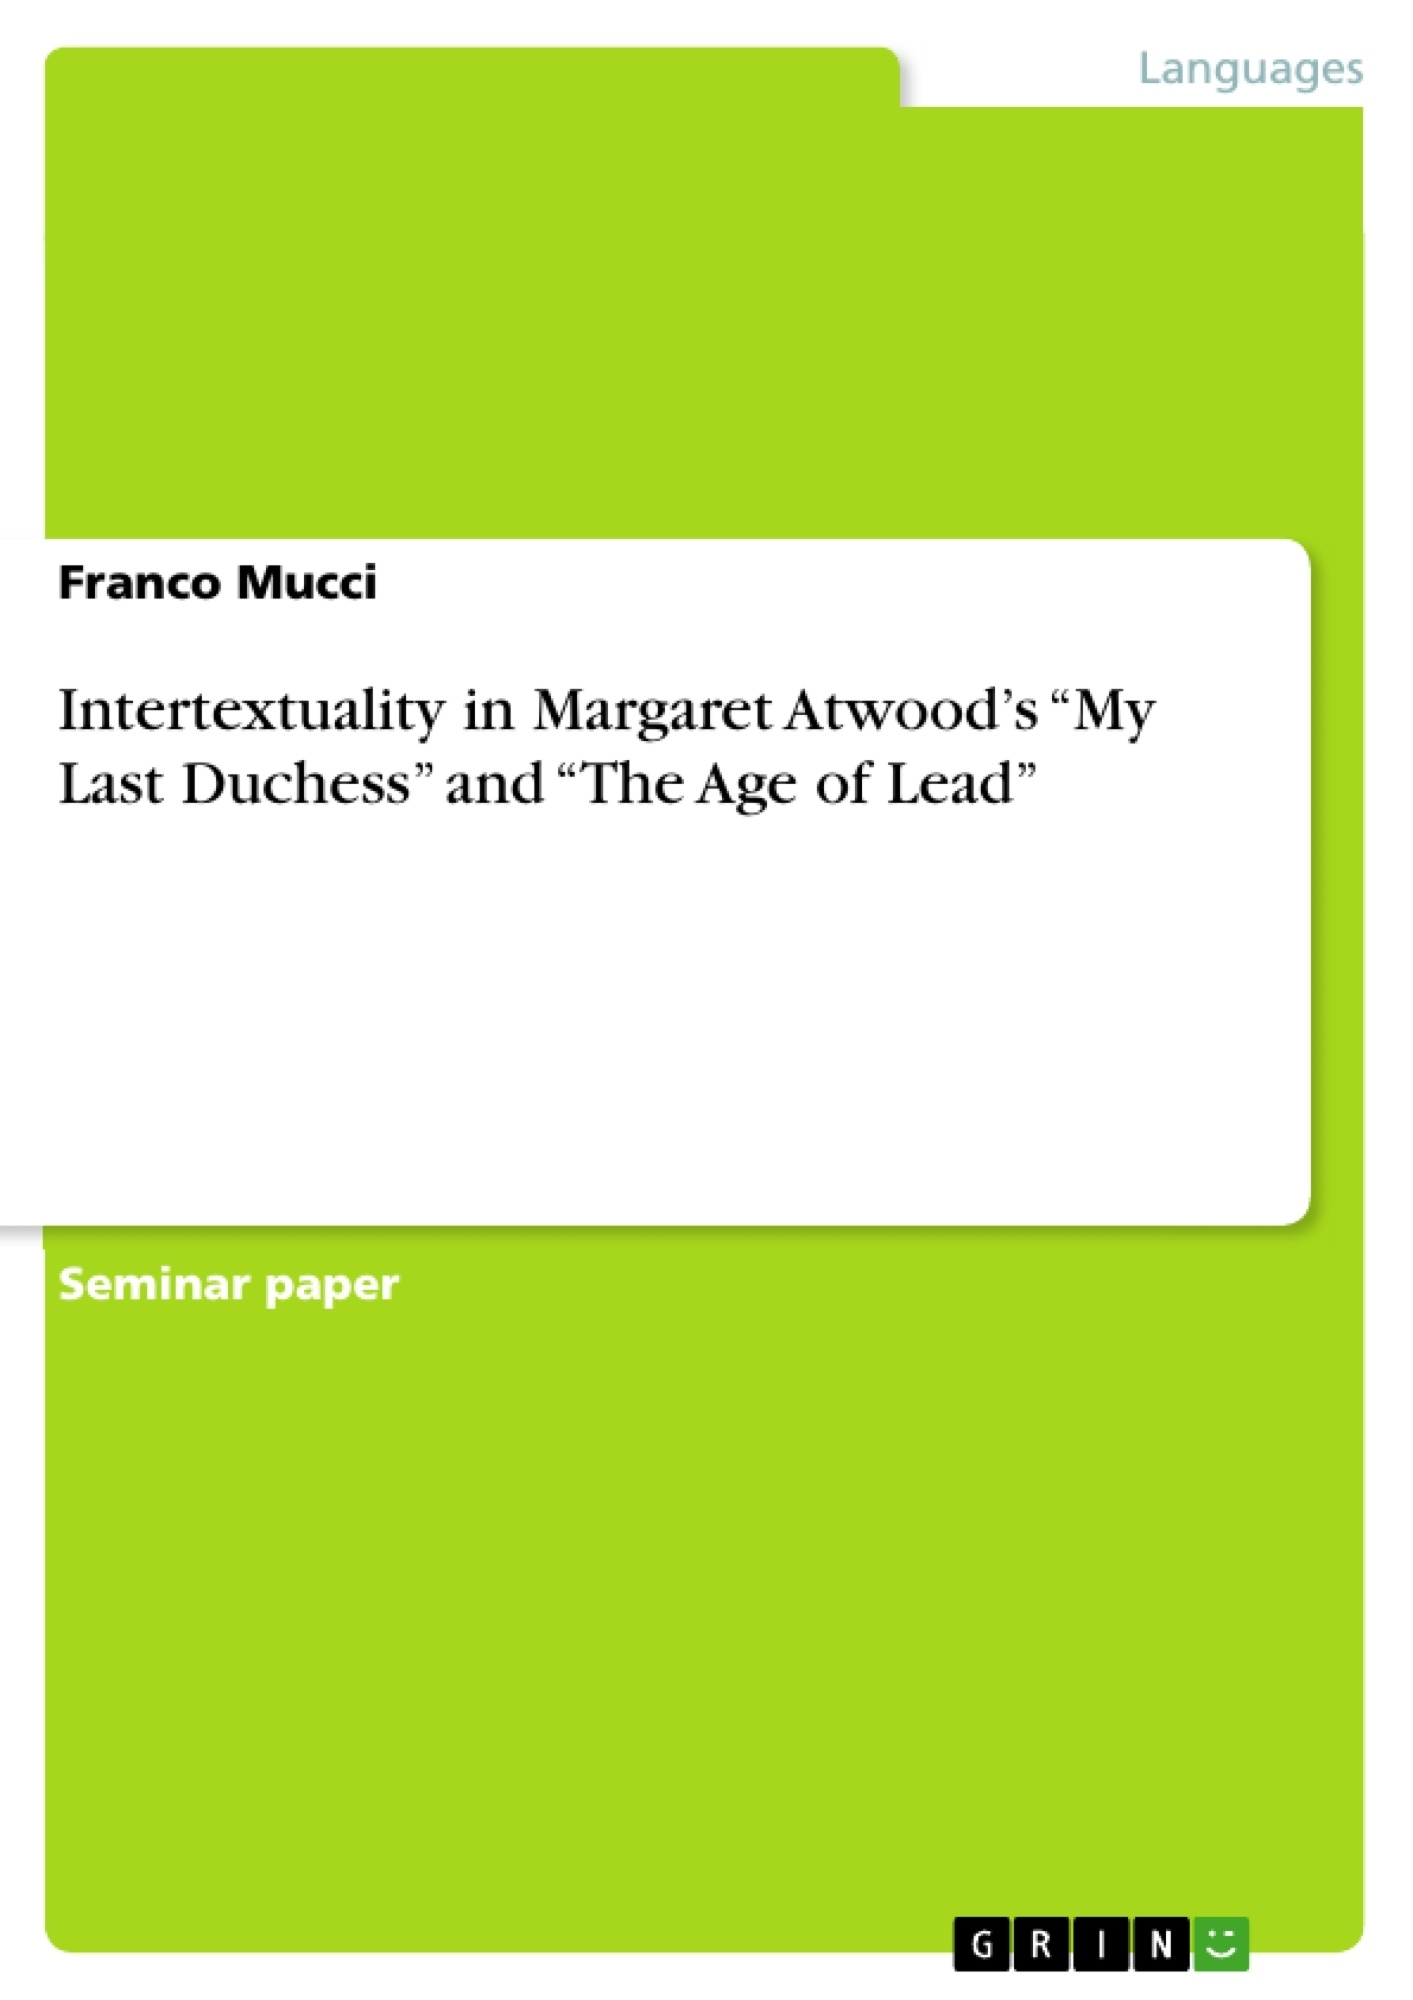 intertextuality in margaret atwood s ldquo my last duchess rdquo and ldquo the intertextuality in margaret atwood s ldquomy last duchessrdquo and ldquothe publish your master s thesis bachelor s thesis essay or term paper